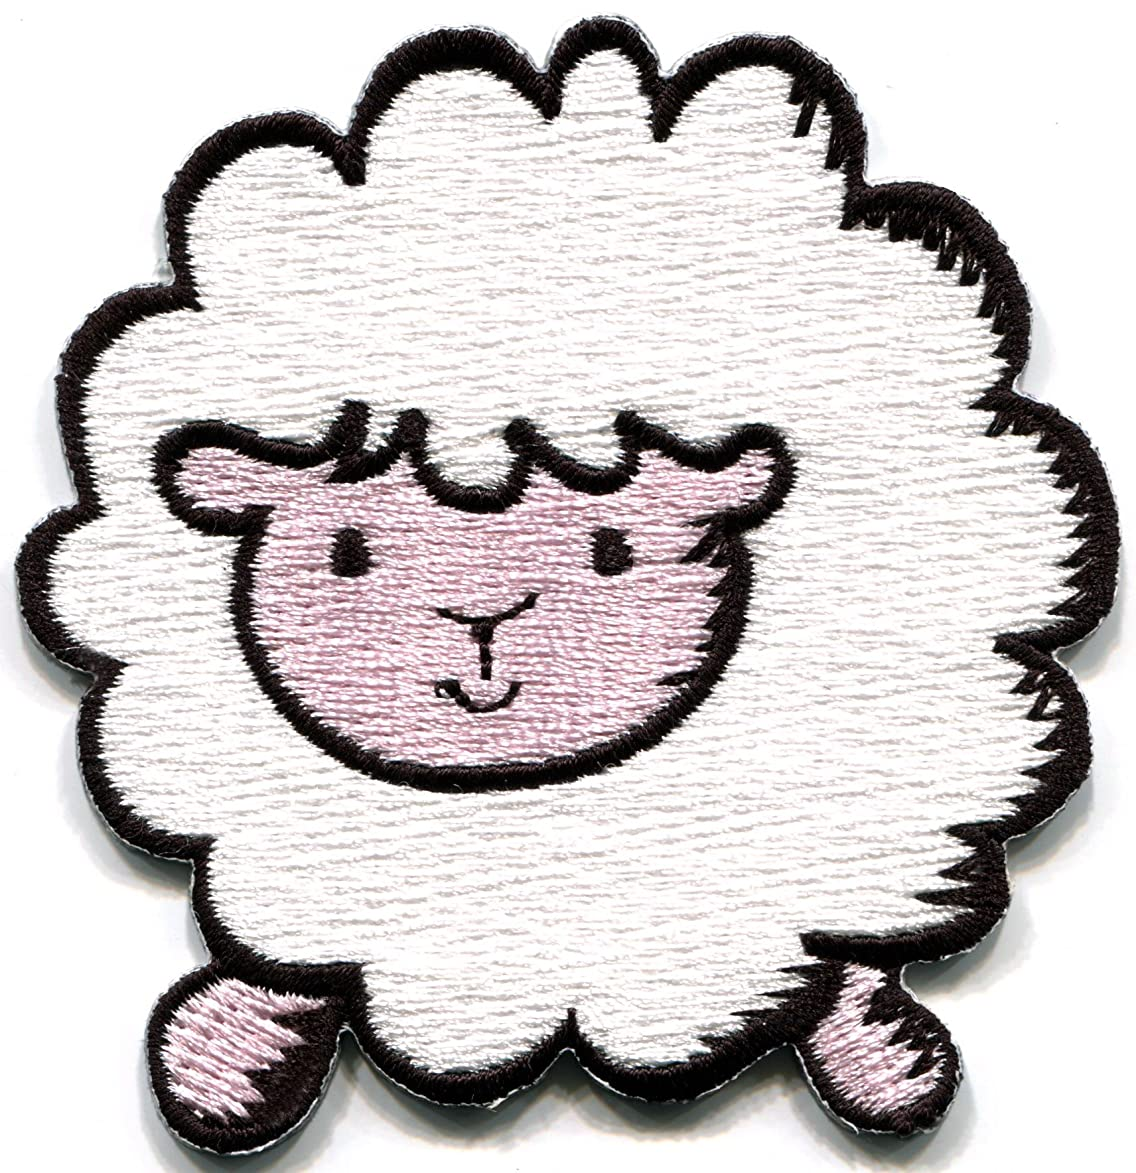 White sheep lamb ewe farm animal fun retro embroidered applique iron-on patch new kfc781994609218